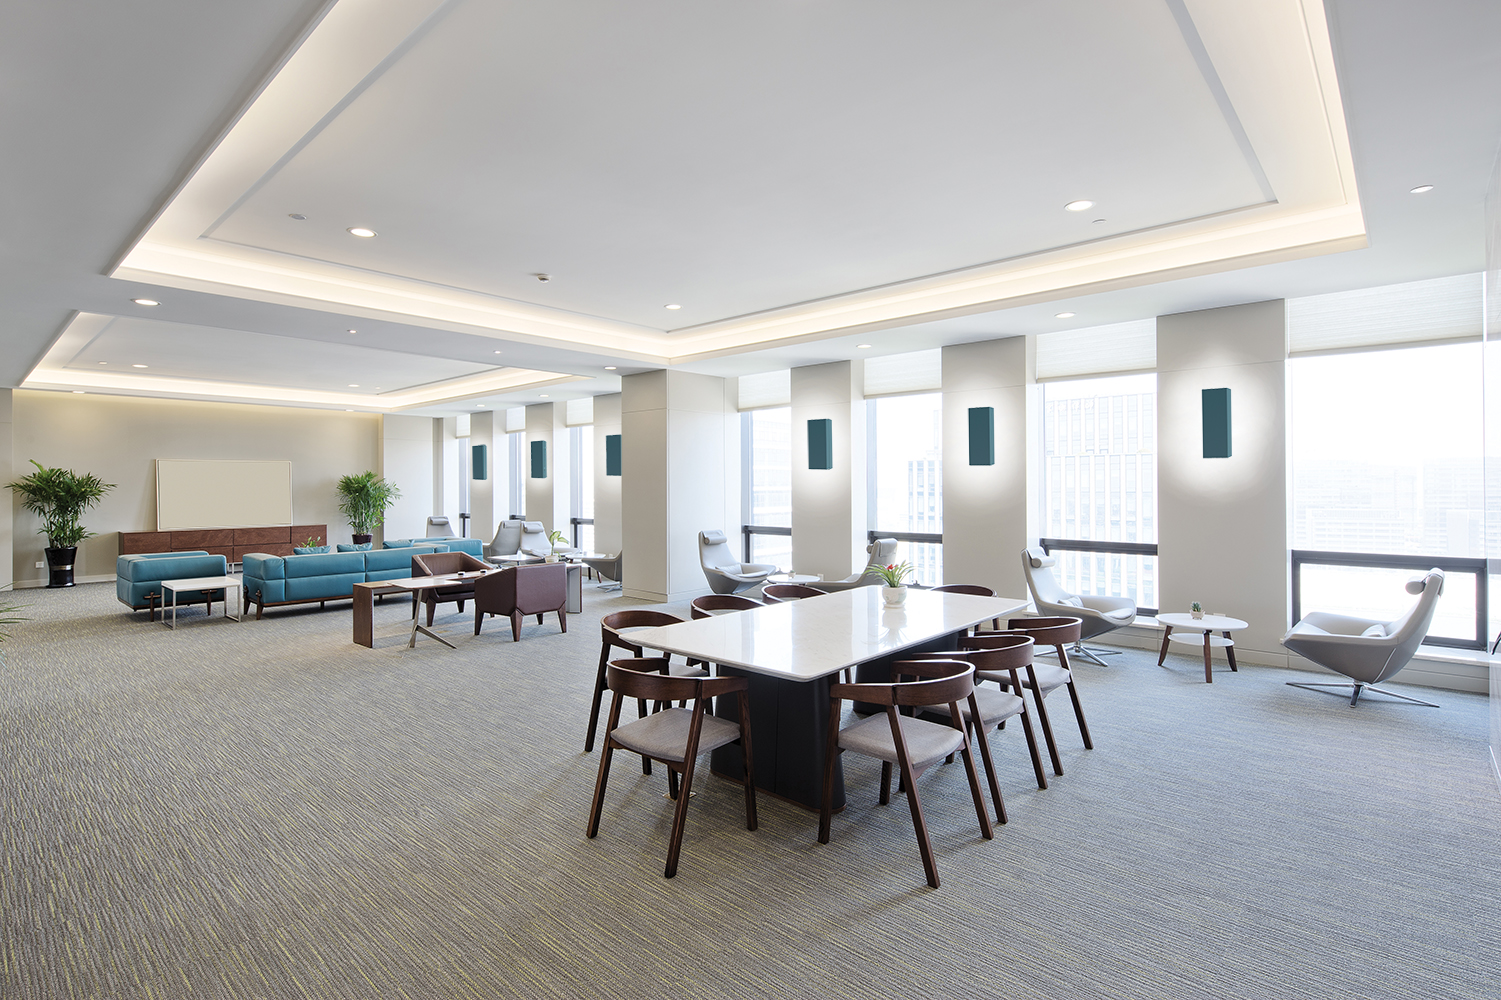 Shield sconces provide attractive indirect light in a large meeting room area for relaxing office lighting design.